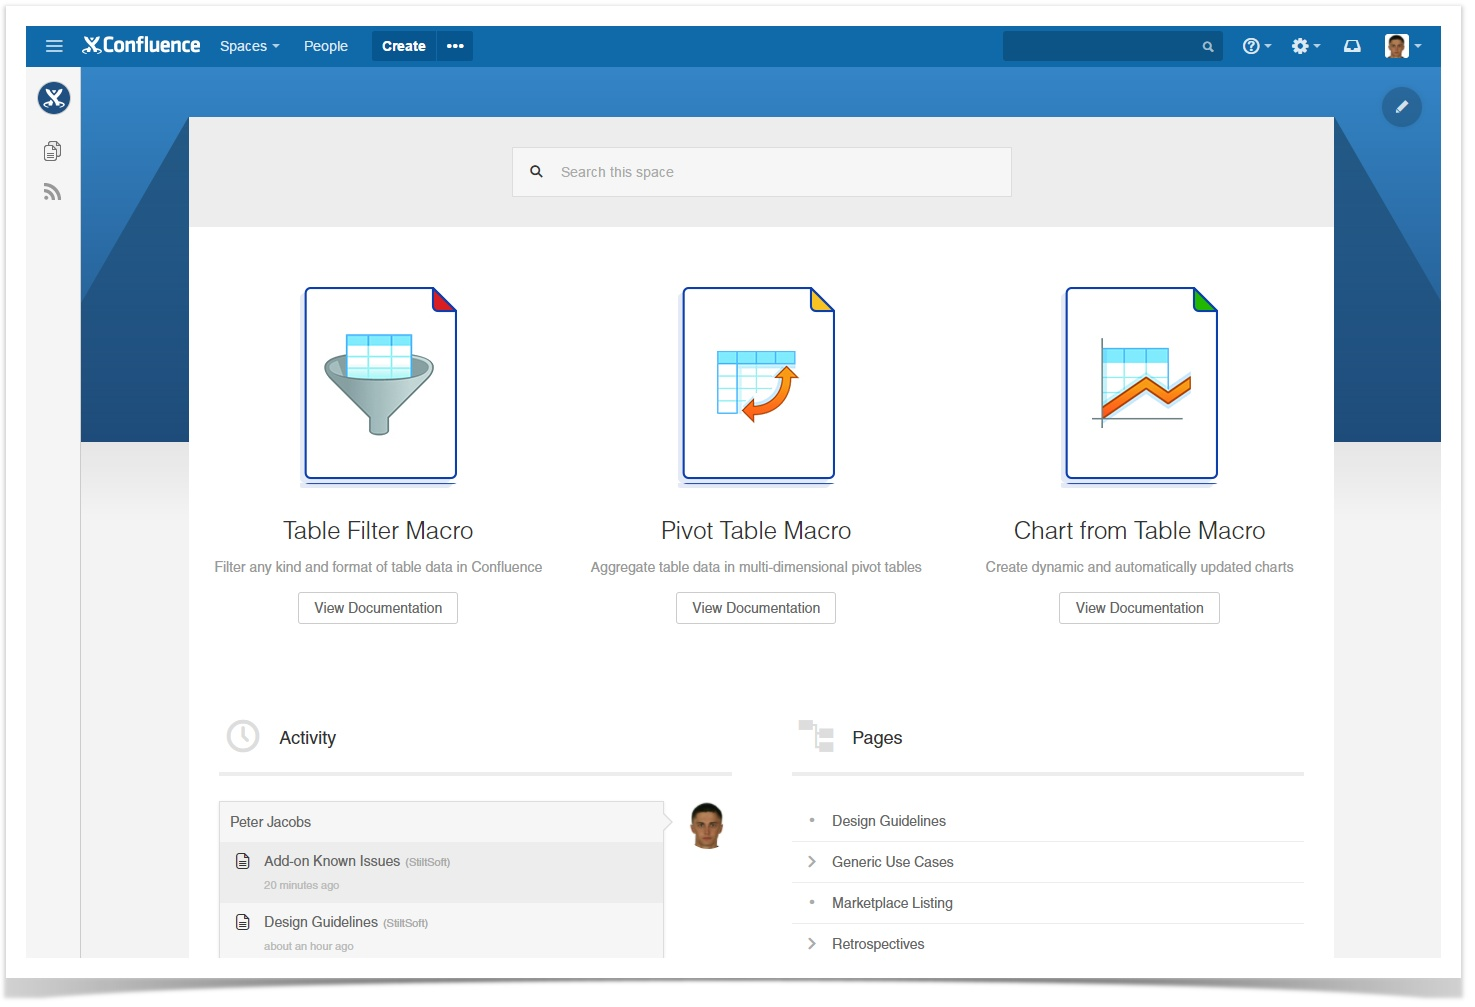 Top 5 New Add Ons For Atlassian Confluence Fourth Quarter 2016